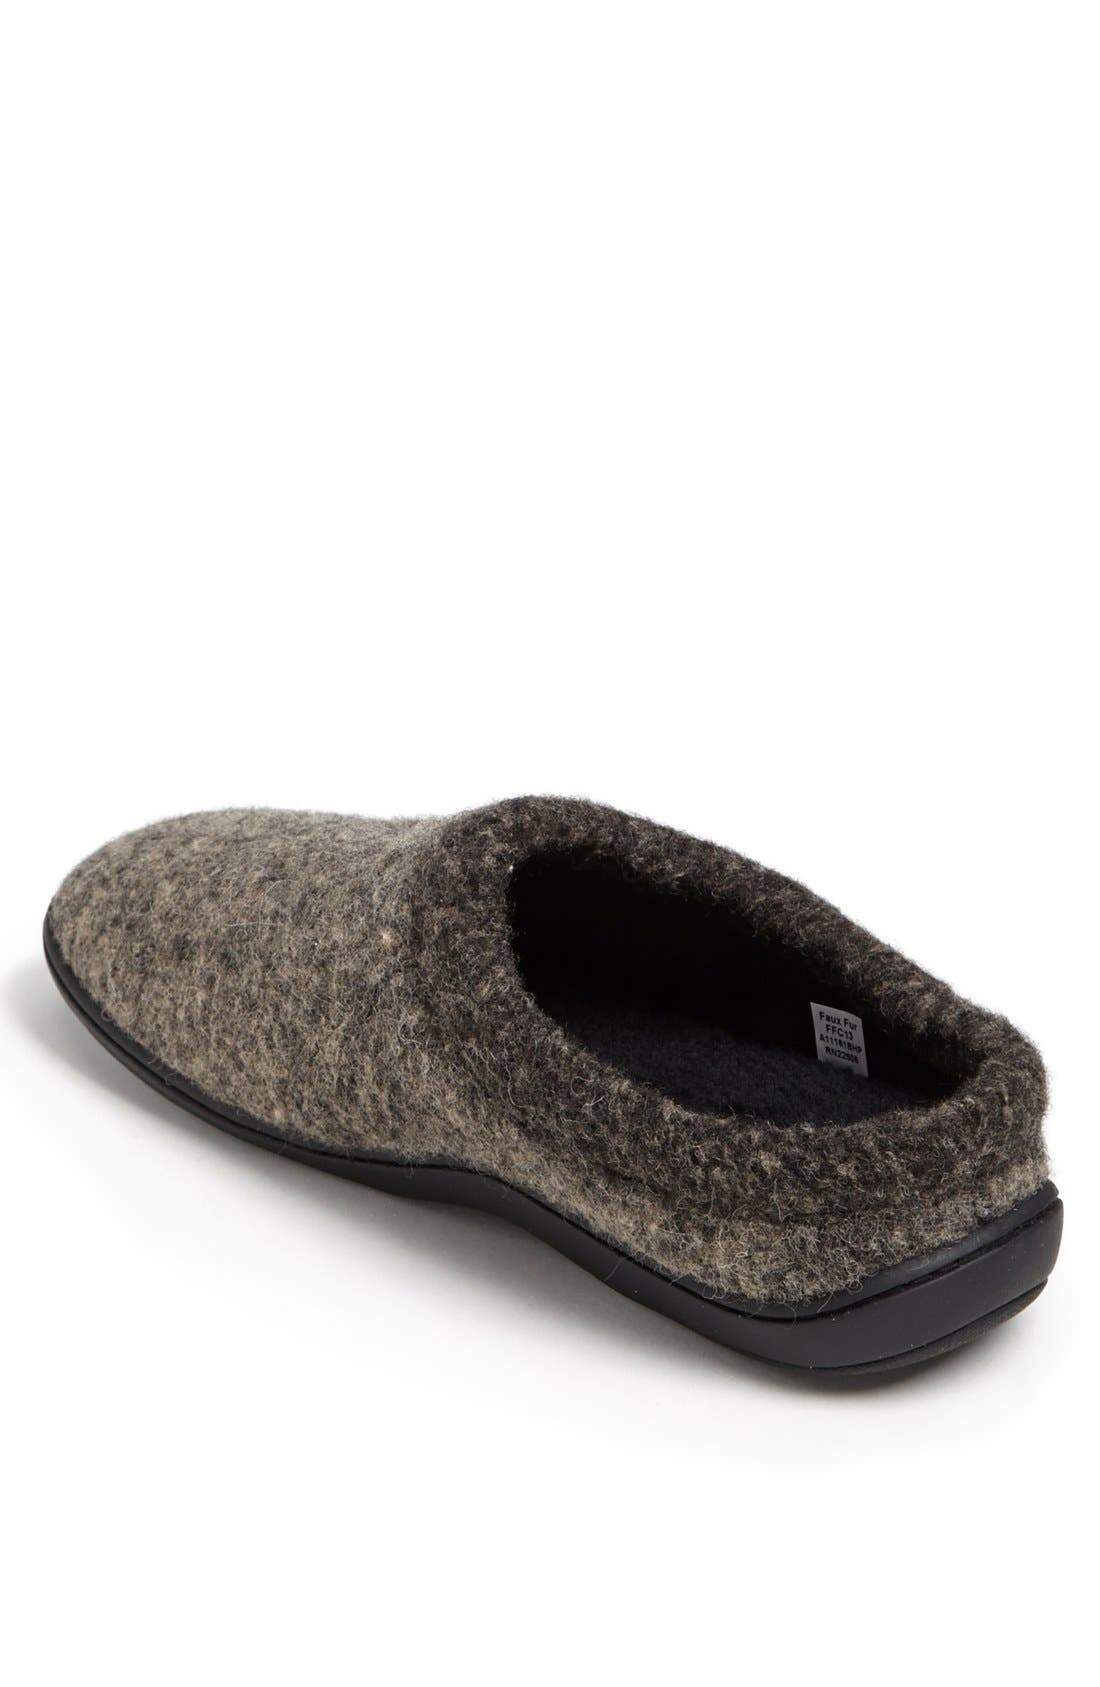 'Digby' Slipper,                             Alternate thumbnail 13, color,